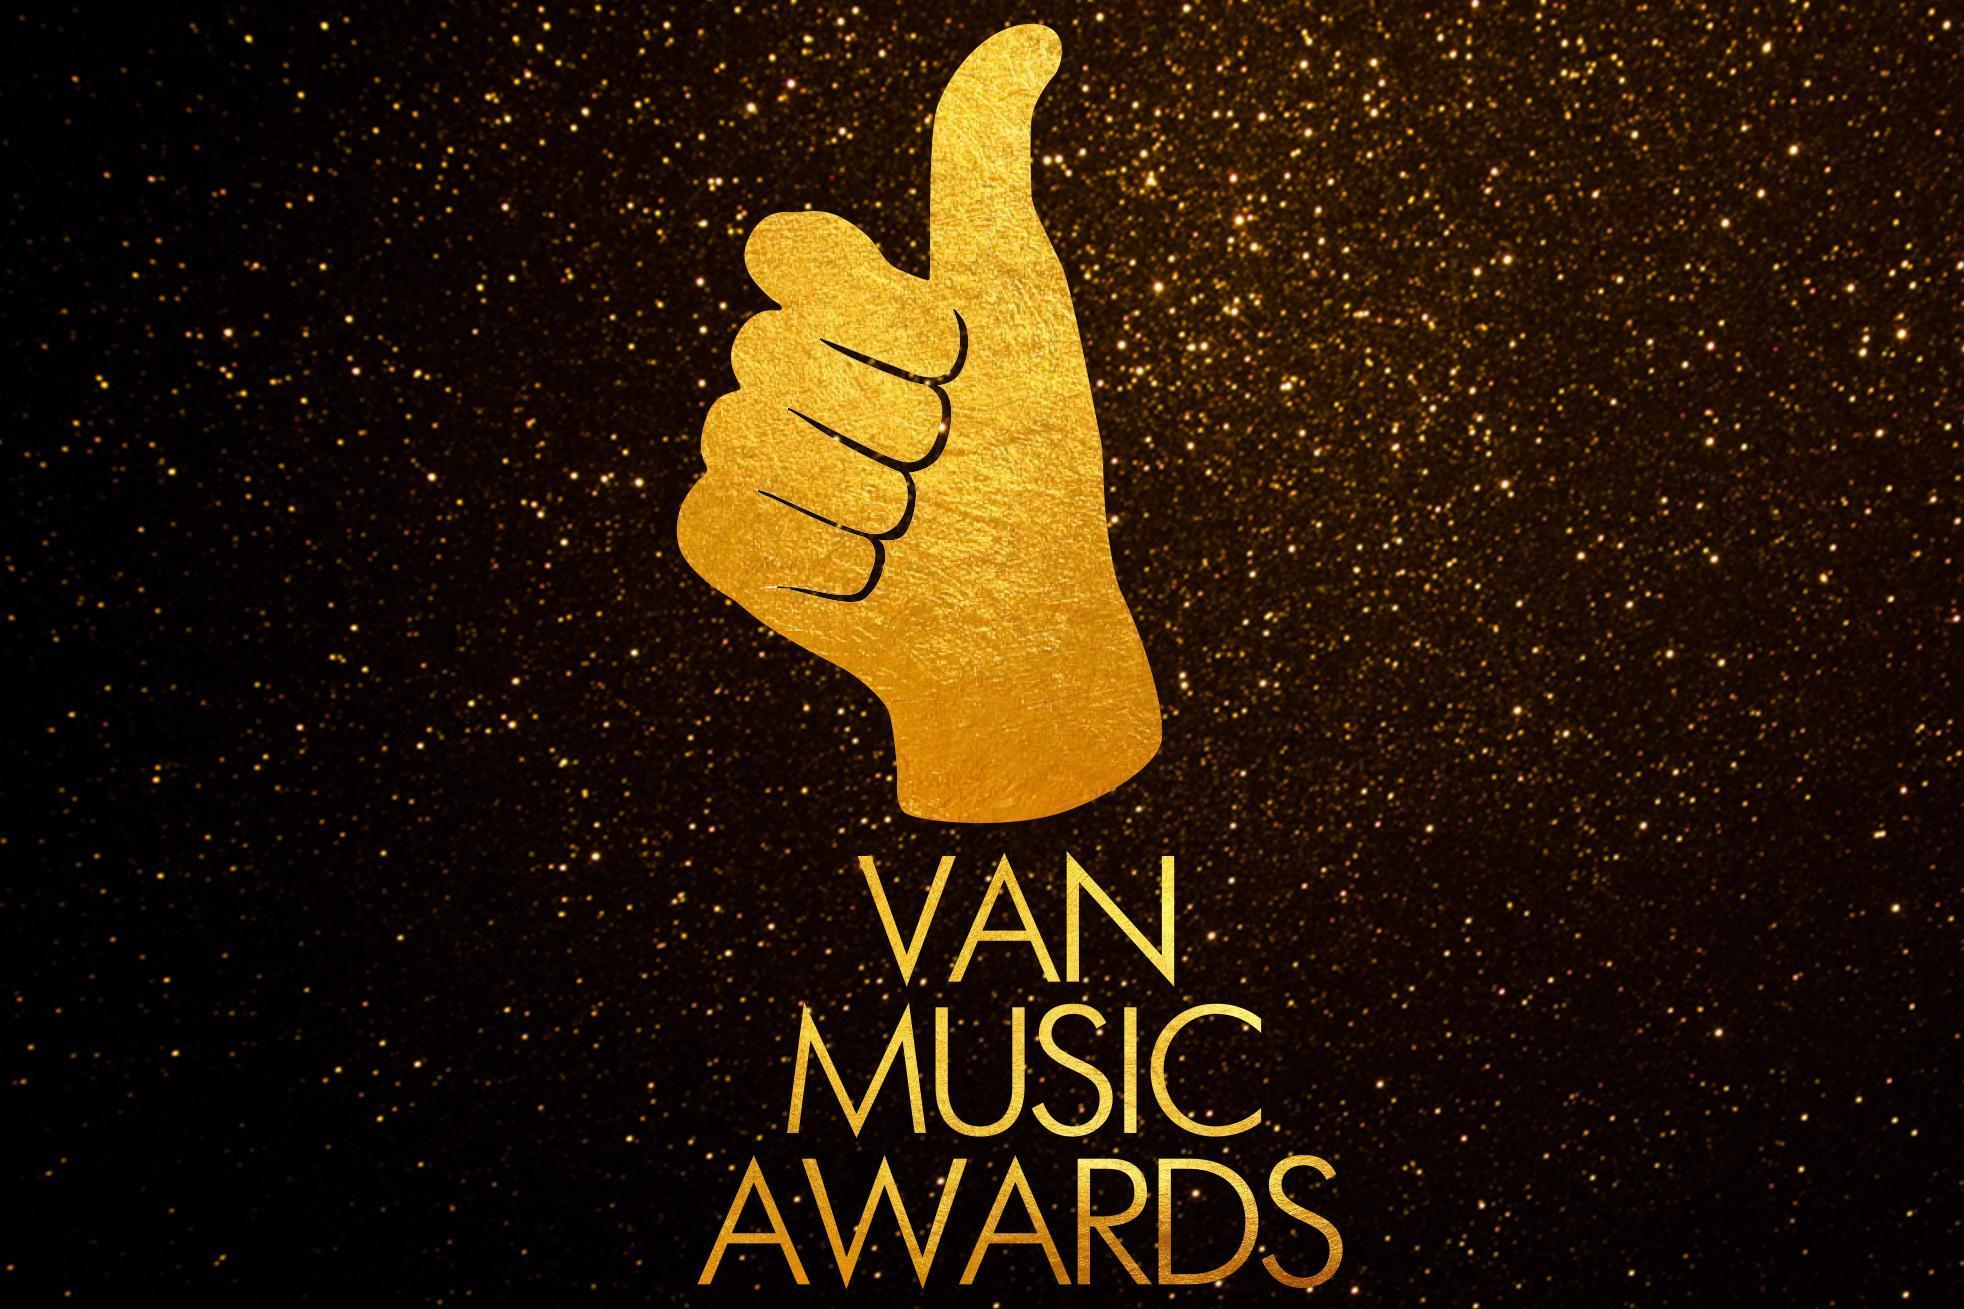 Van Music Awards 2019